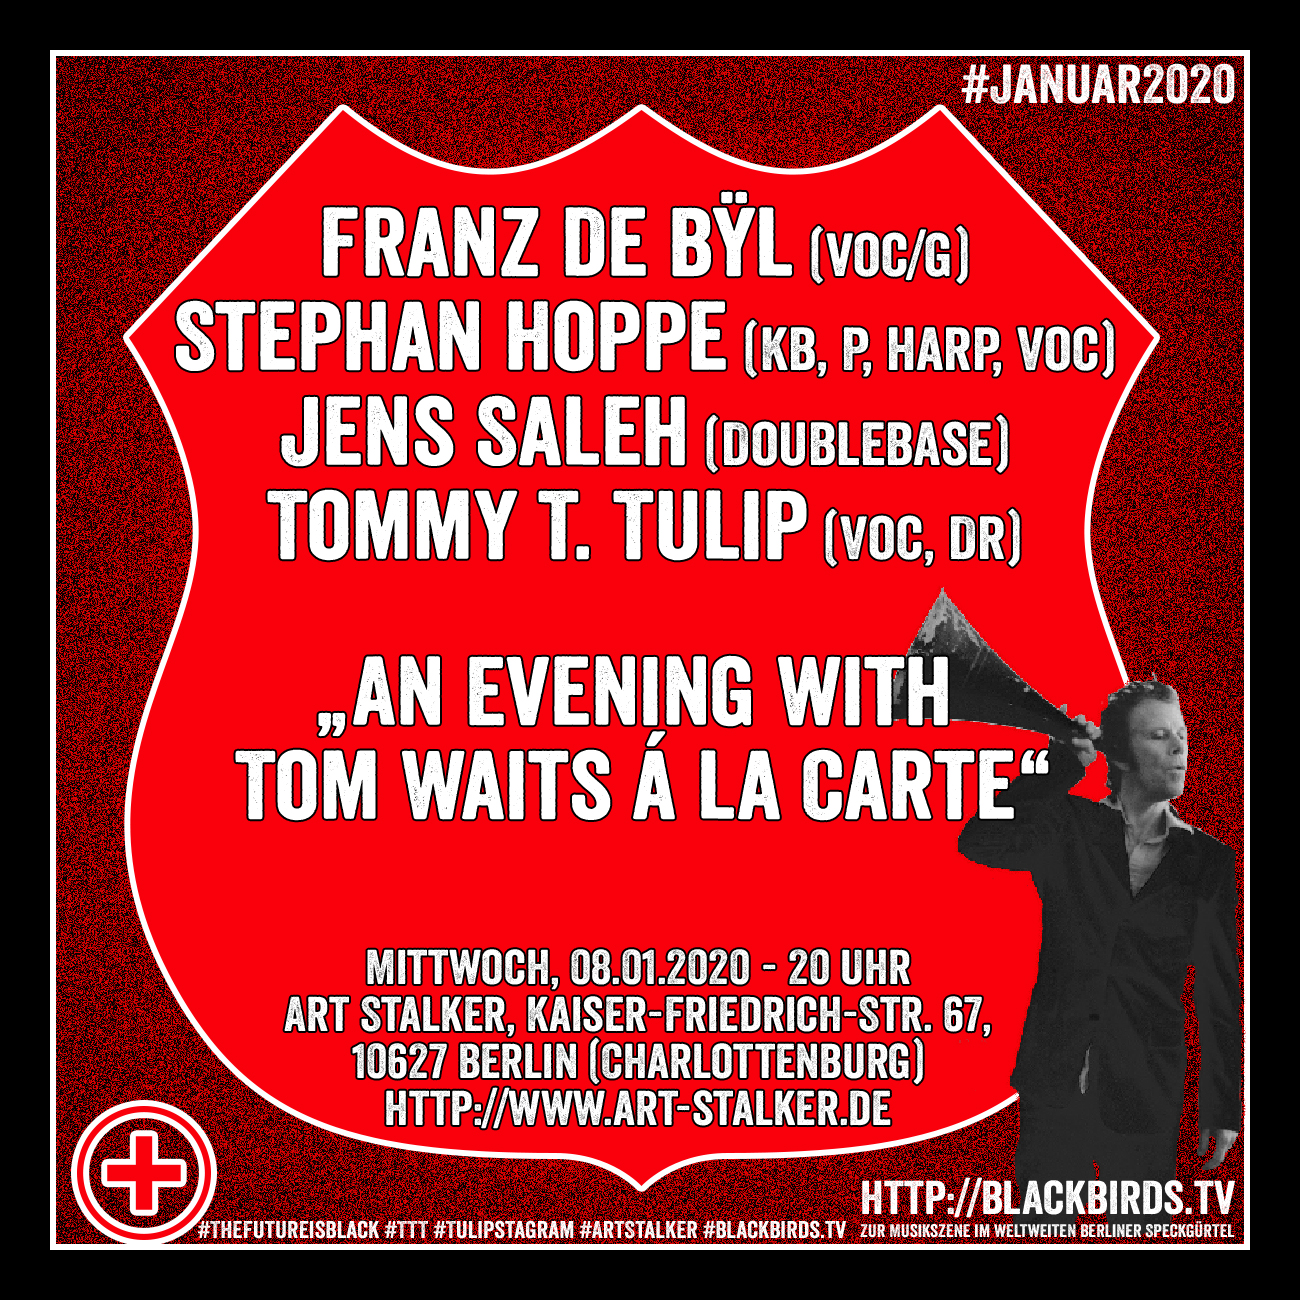 """An Evening with Tom Waits á la carte"" Franz de Bÿl, Stephan Hoppe, Jens Saleh, Tommy T. Tulip #TheFutureistblack #TTT #Tulipstagram #ArtStalker #blackbirdsTV #Januar2020"